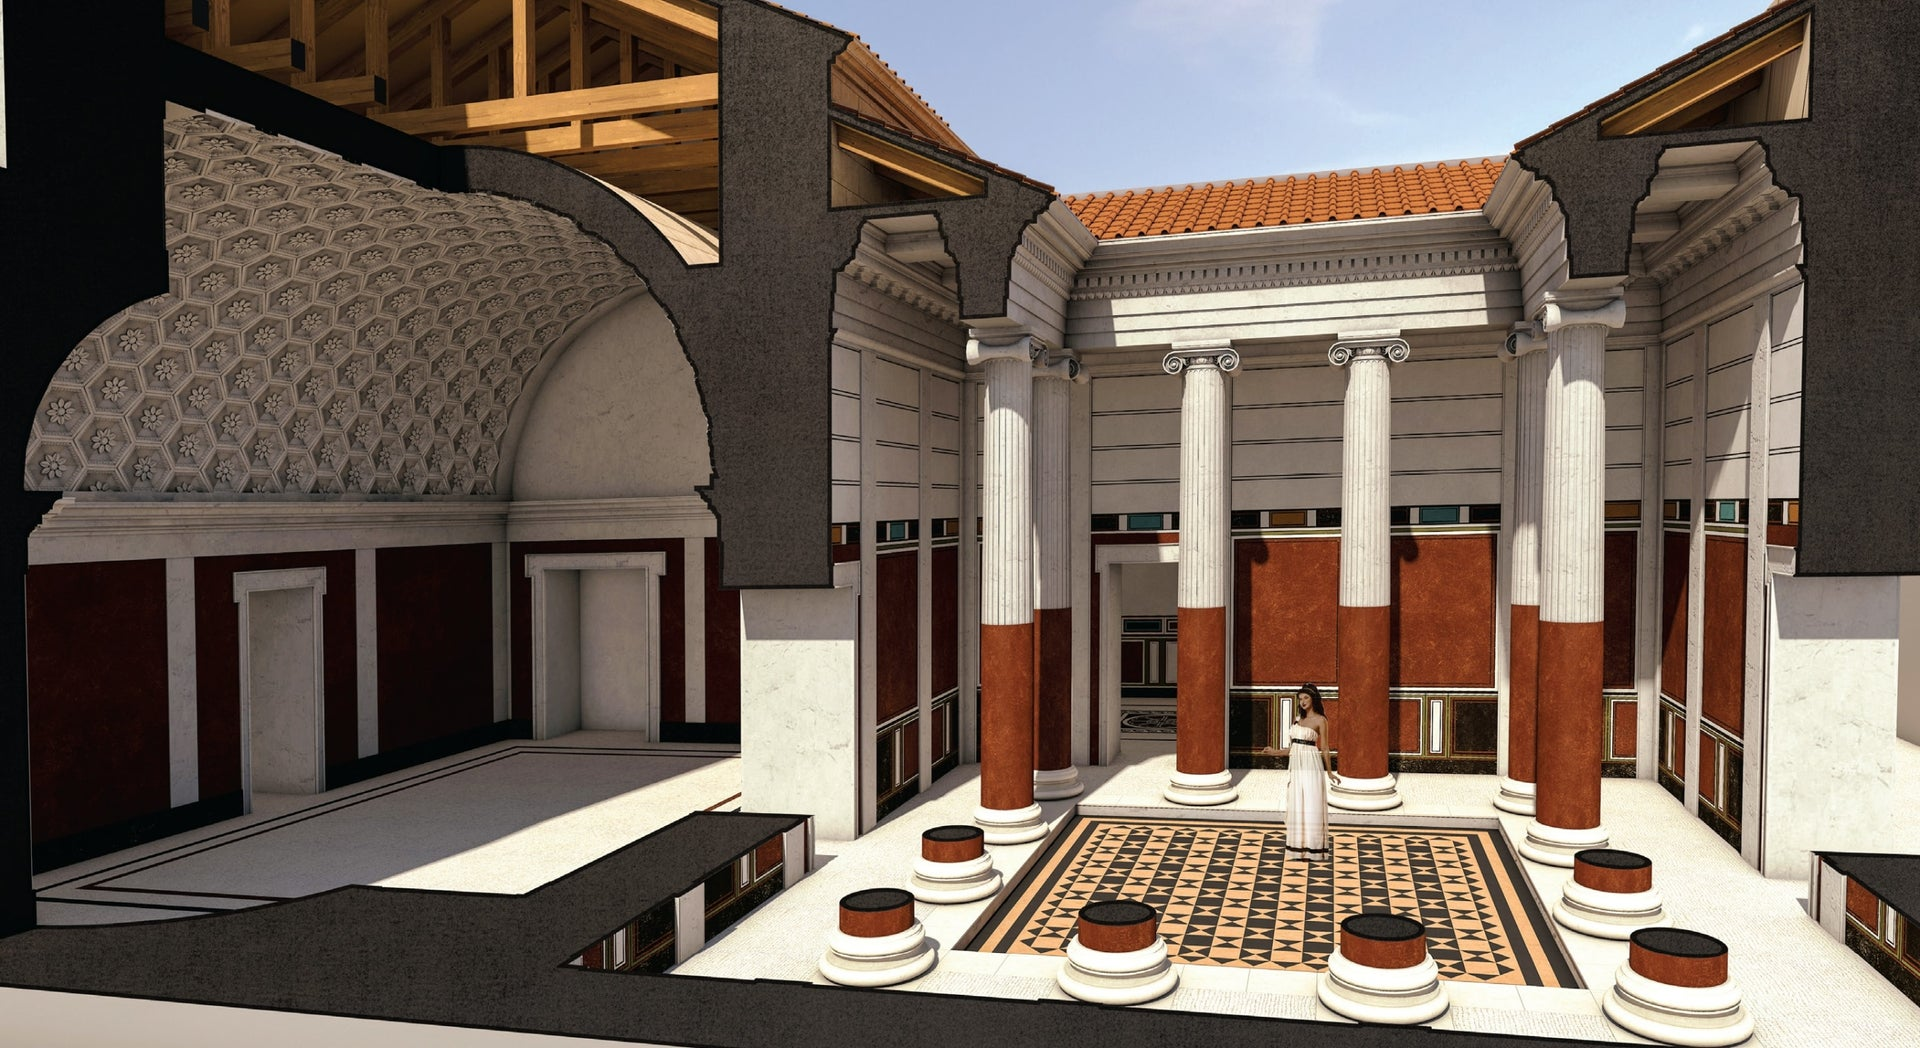 Digital reconstruction of the royal bathhouse in Machaerus. The re-erected ionic column once stood in the bathhouse along with 11 others that lined the entry hall.